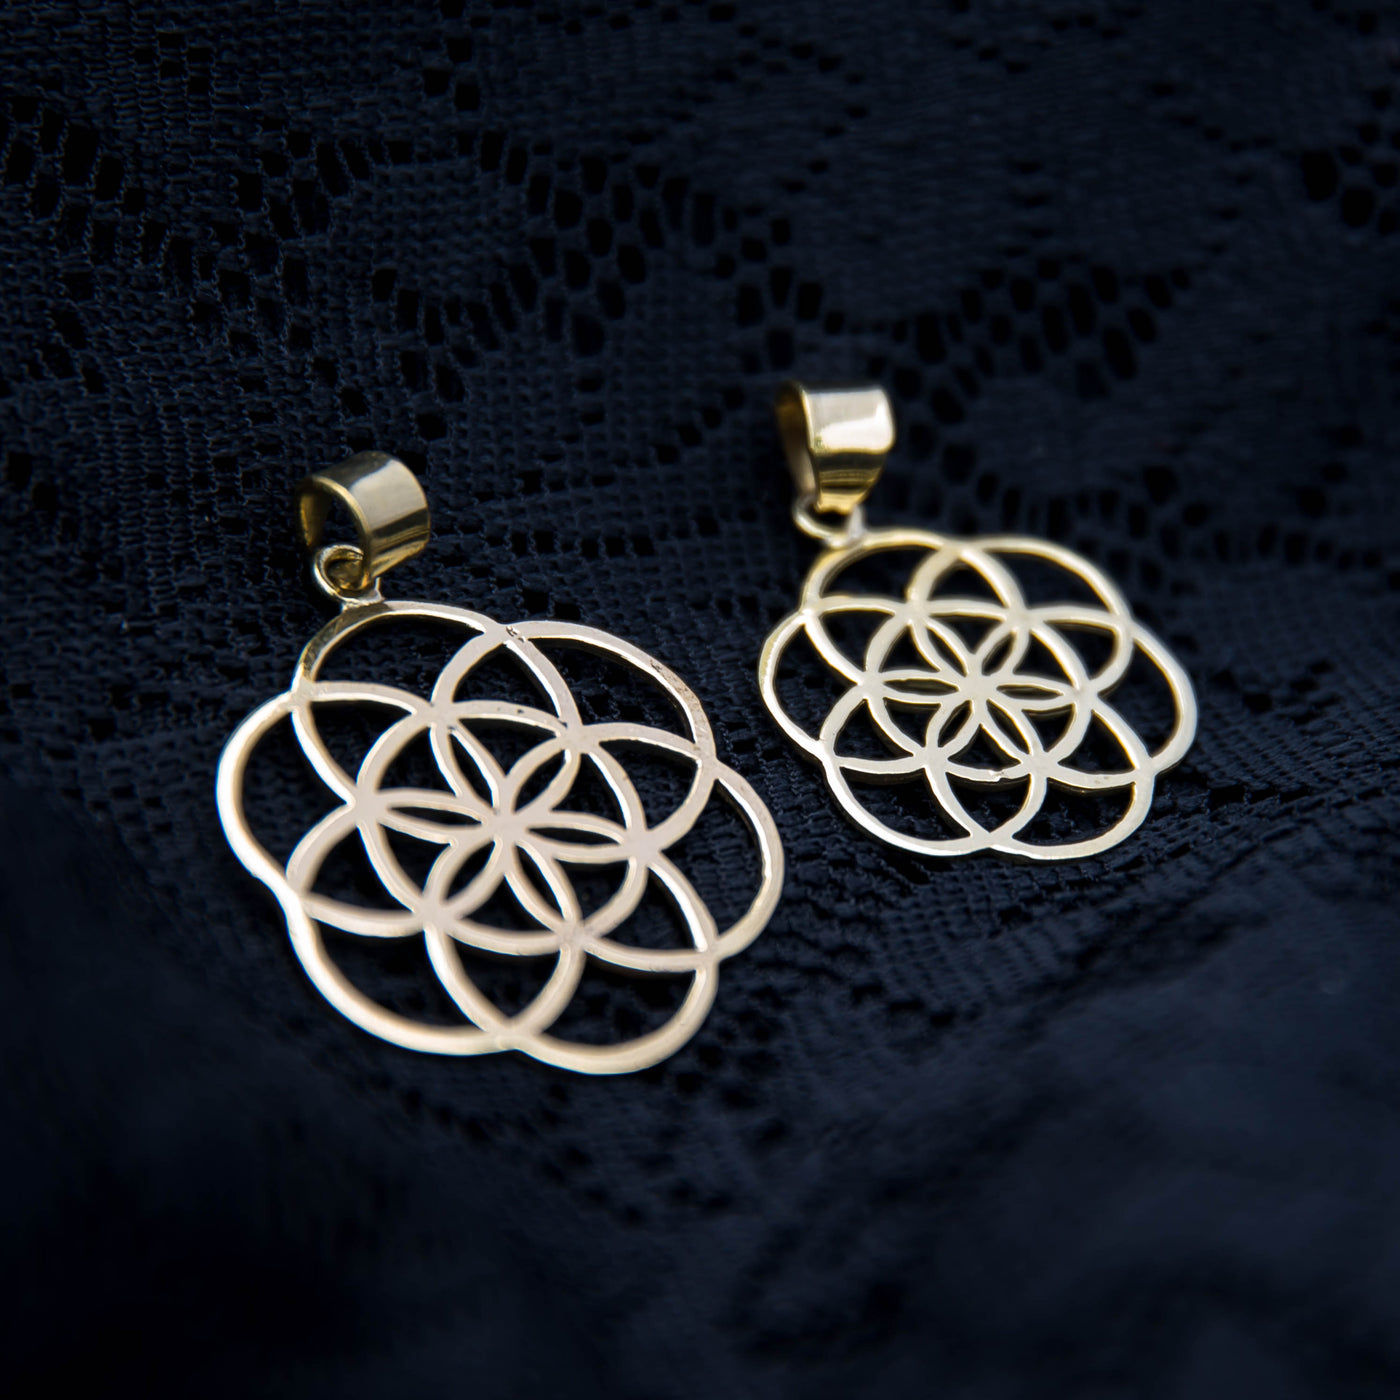 Seed of Life Pendant - Brass